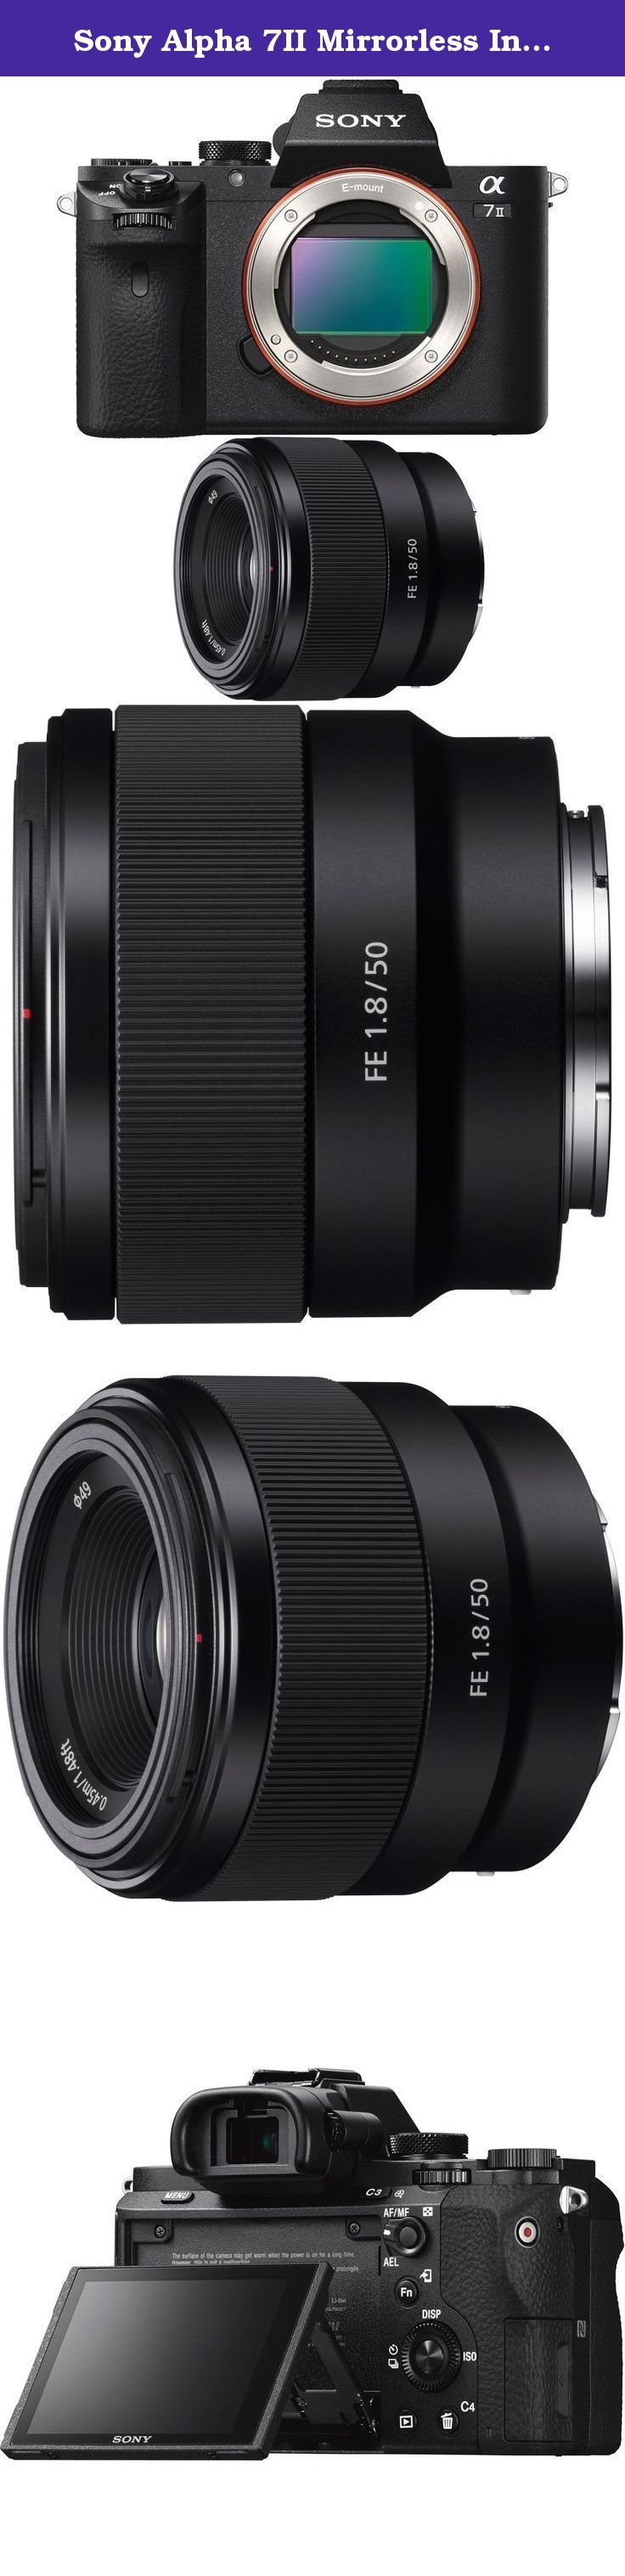 Sony Alpha 7II Mirrorless Interchangeable Lens Camera w/ FE 50mm Prime E-Mount Lens. Bundle Includes Sony Alpha 7II Mirrorless Interchangeable Lens Camera Sony FE 50mm F1.8 Full-frame Prime E-Mount Lens Full-frame, palm-sized. Perfection for all. Stability for all.Breathtaking image quality meets unrivaled shooting freedom in the 7 II, the world's first full-frame camera with 5-axis image stabilization. Now you can fully express your vision with full-frame quality and cutting-edge camera...